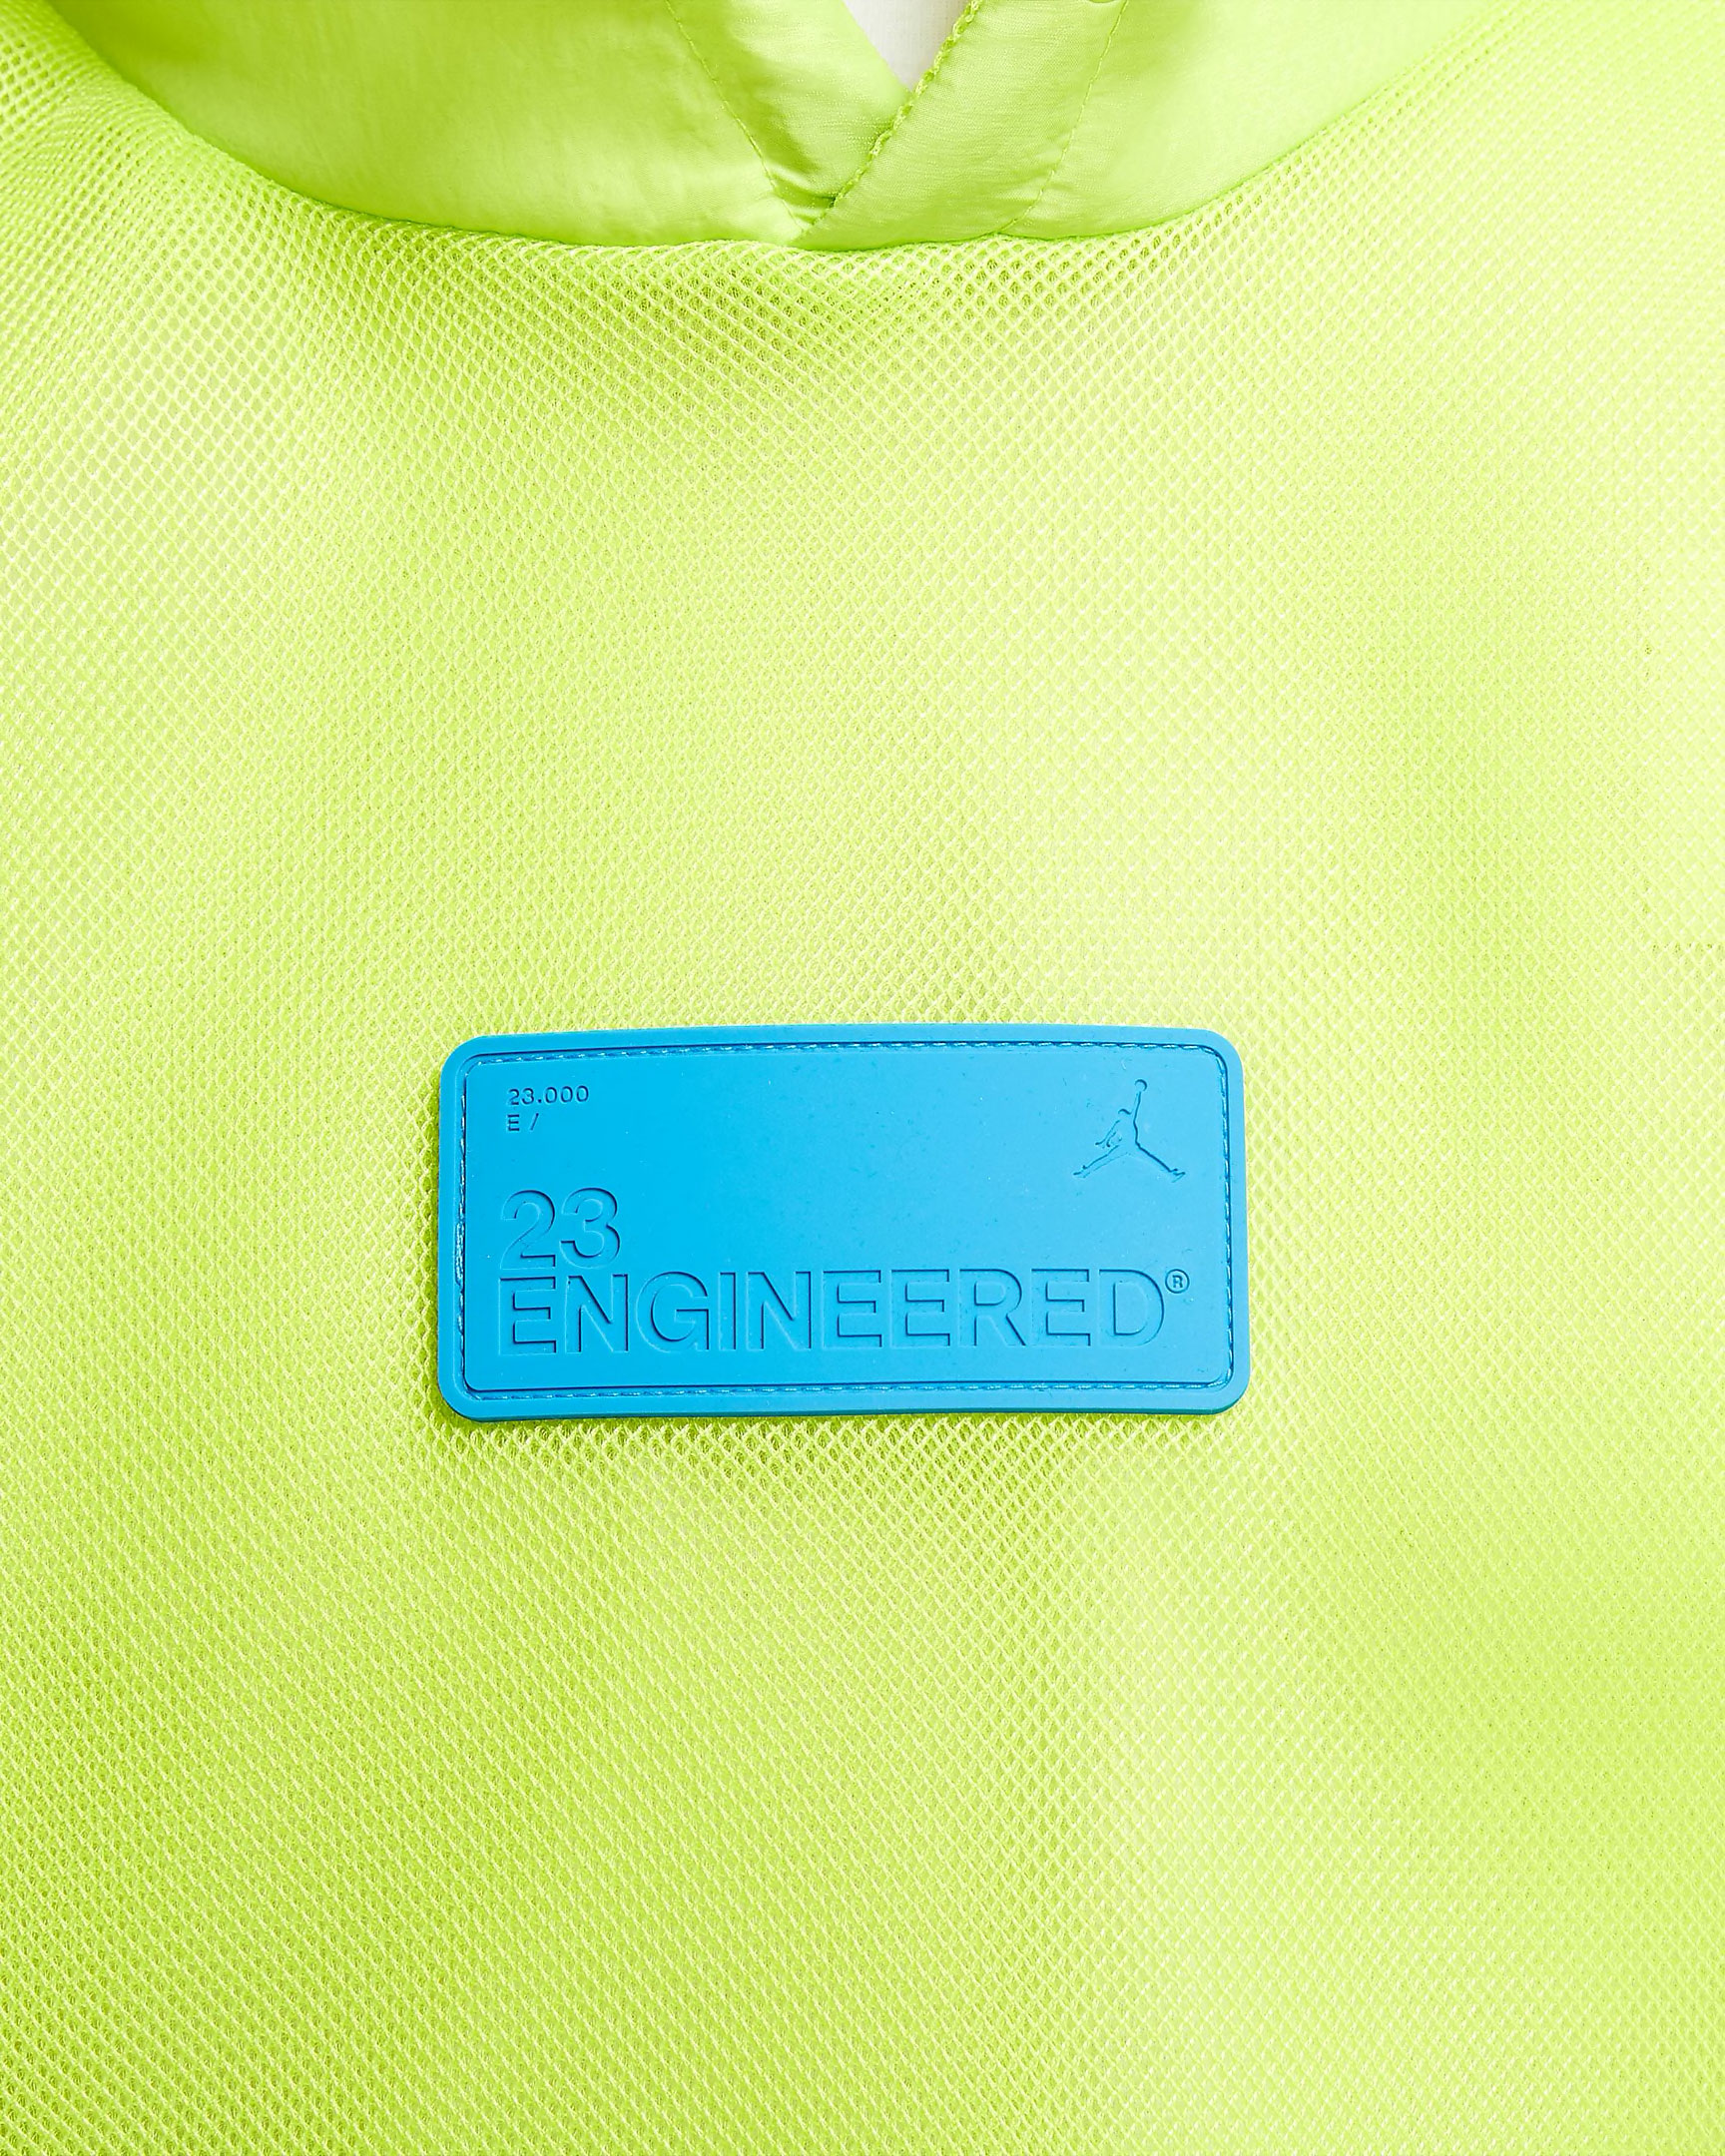 jordan-23-engineered-hoodie-green-blue-2